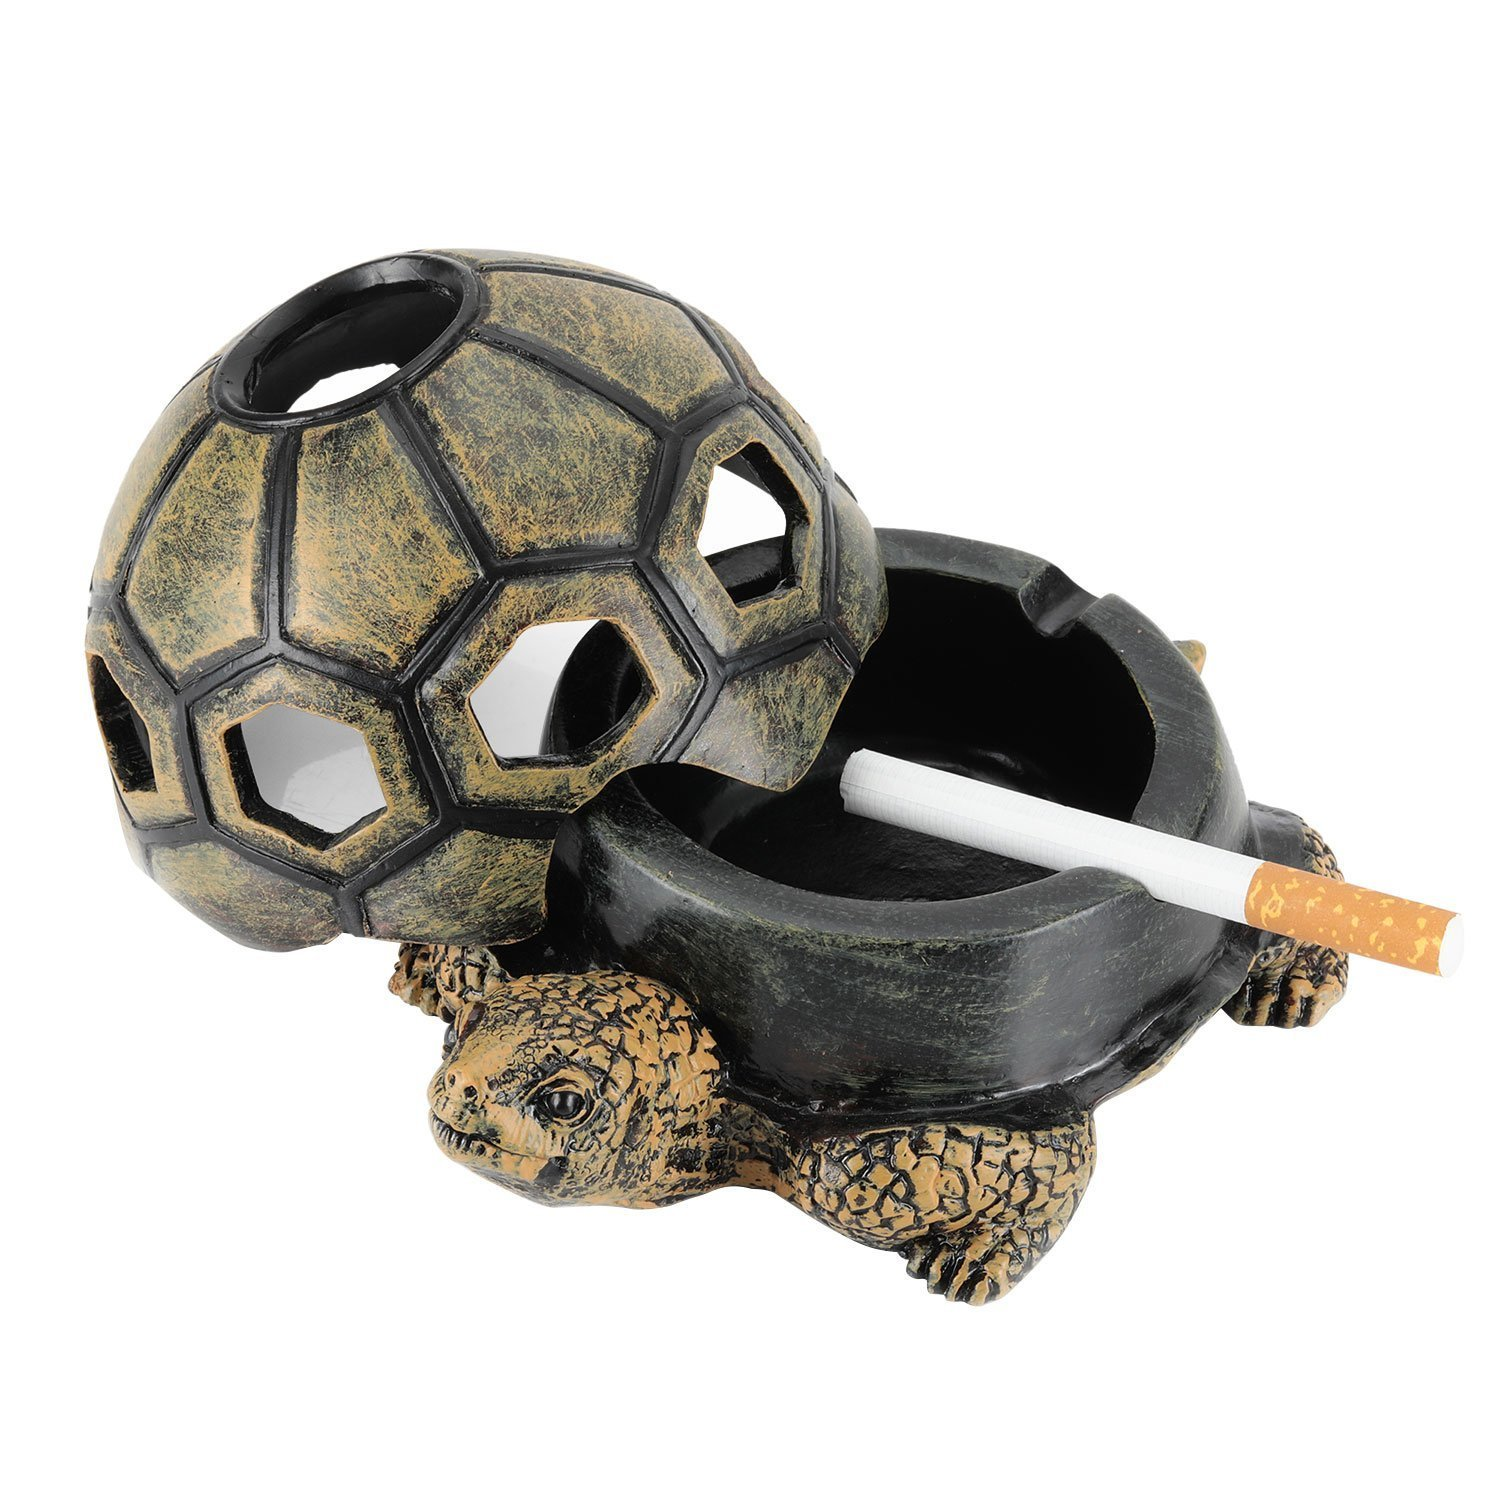 Scotte novelty turtle cigar ashtray/outdoor ashtray/ashtray outdoor for home or gift KG0706